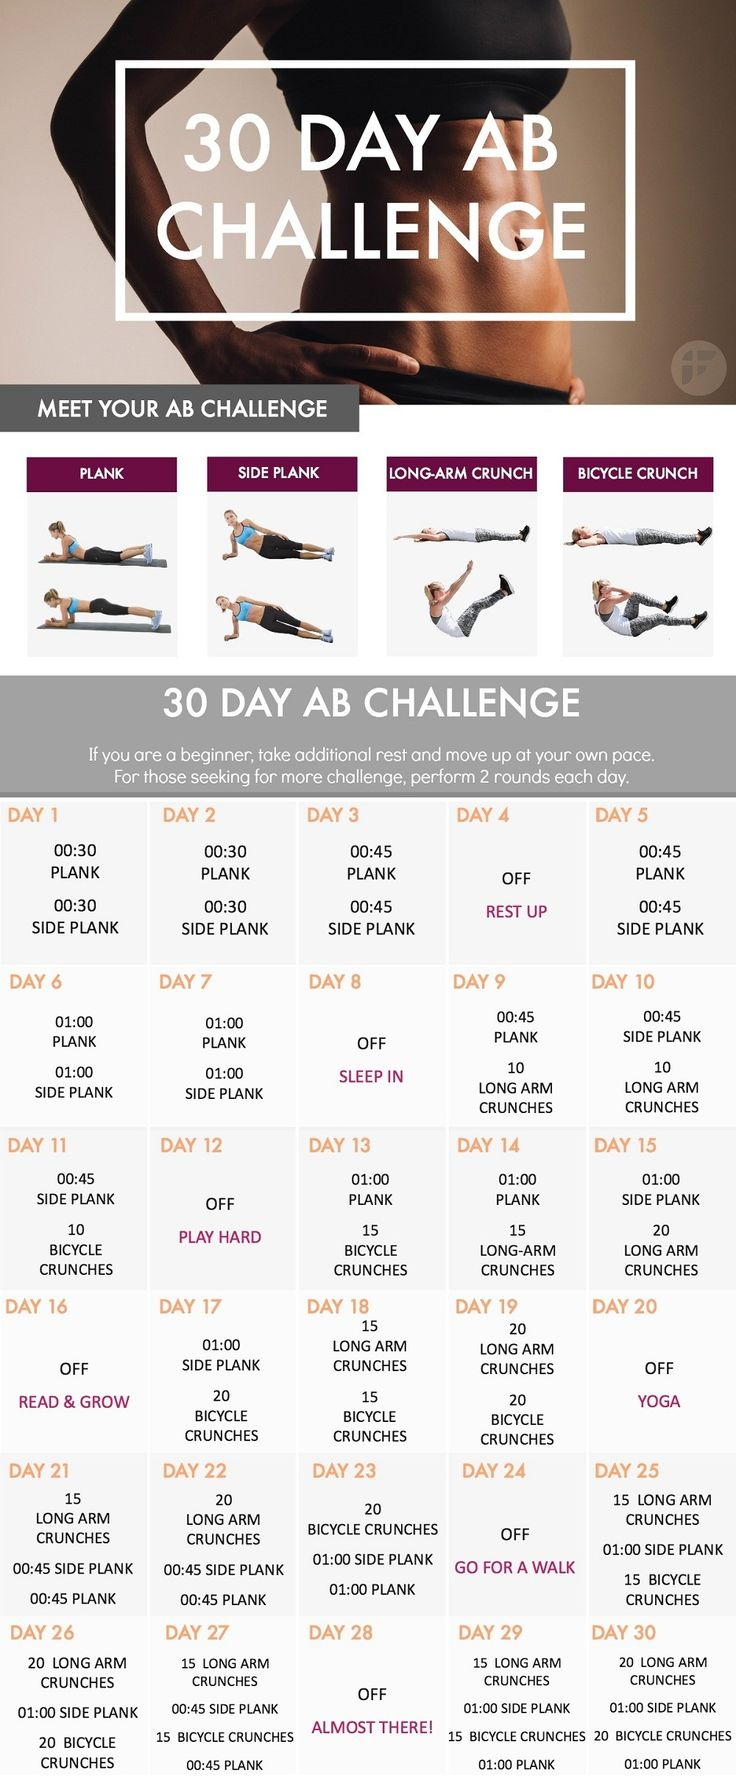 This 30-day ab challenge is the best way to lose belly fat and strengthen your core muscles. Most of the people think that the abs are probably the most important muscle group in the body. All of you, whether you care about having toned abs or not - train